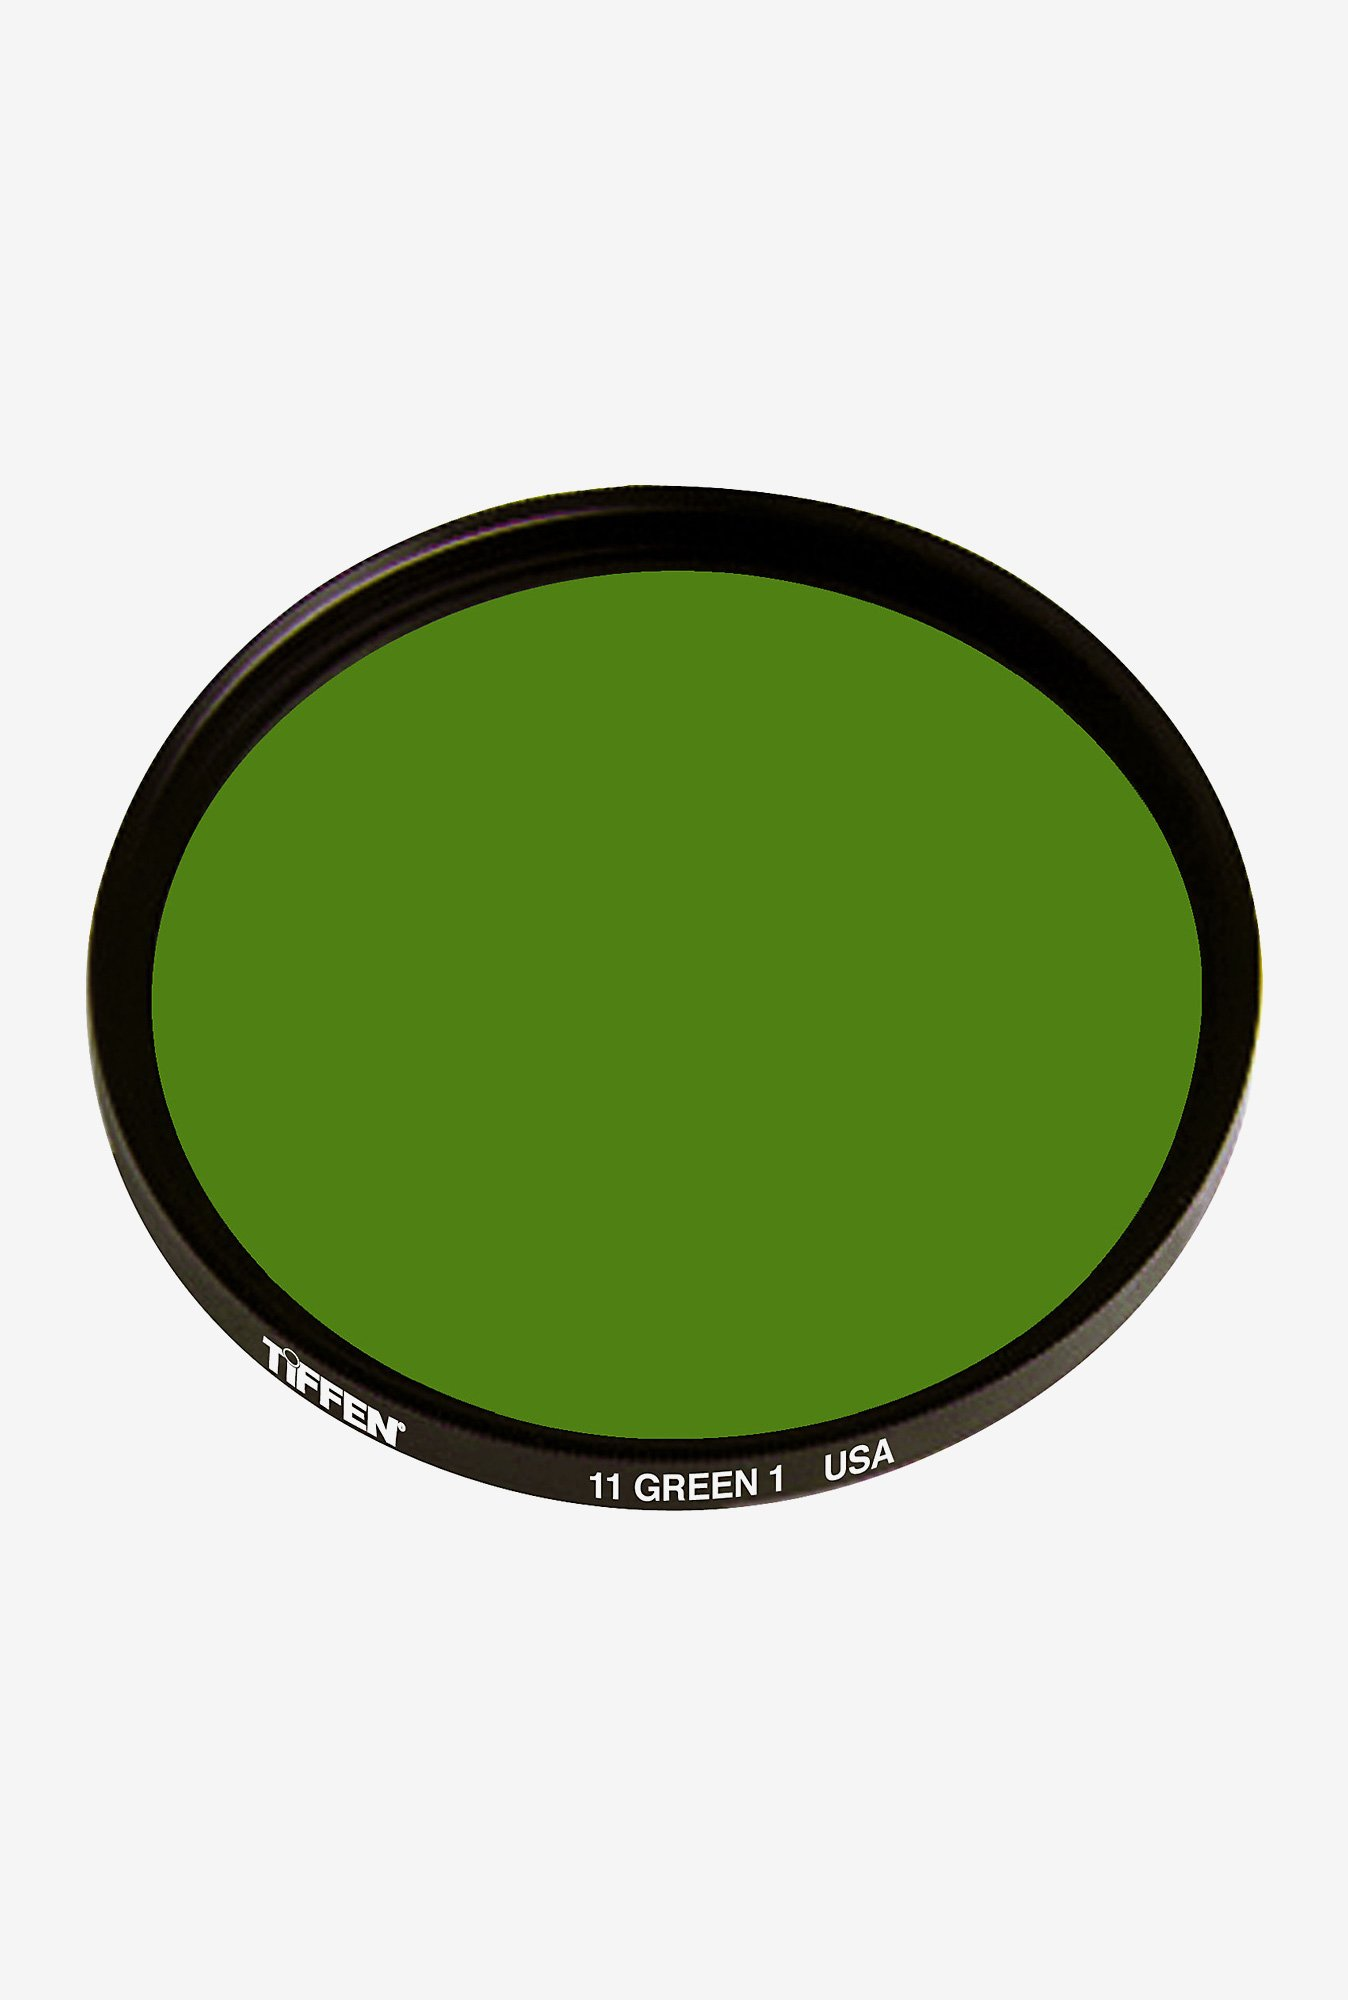 Tiffen 52mm Filter (Green 11)